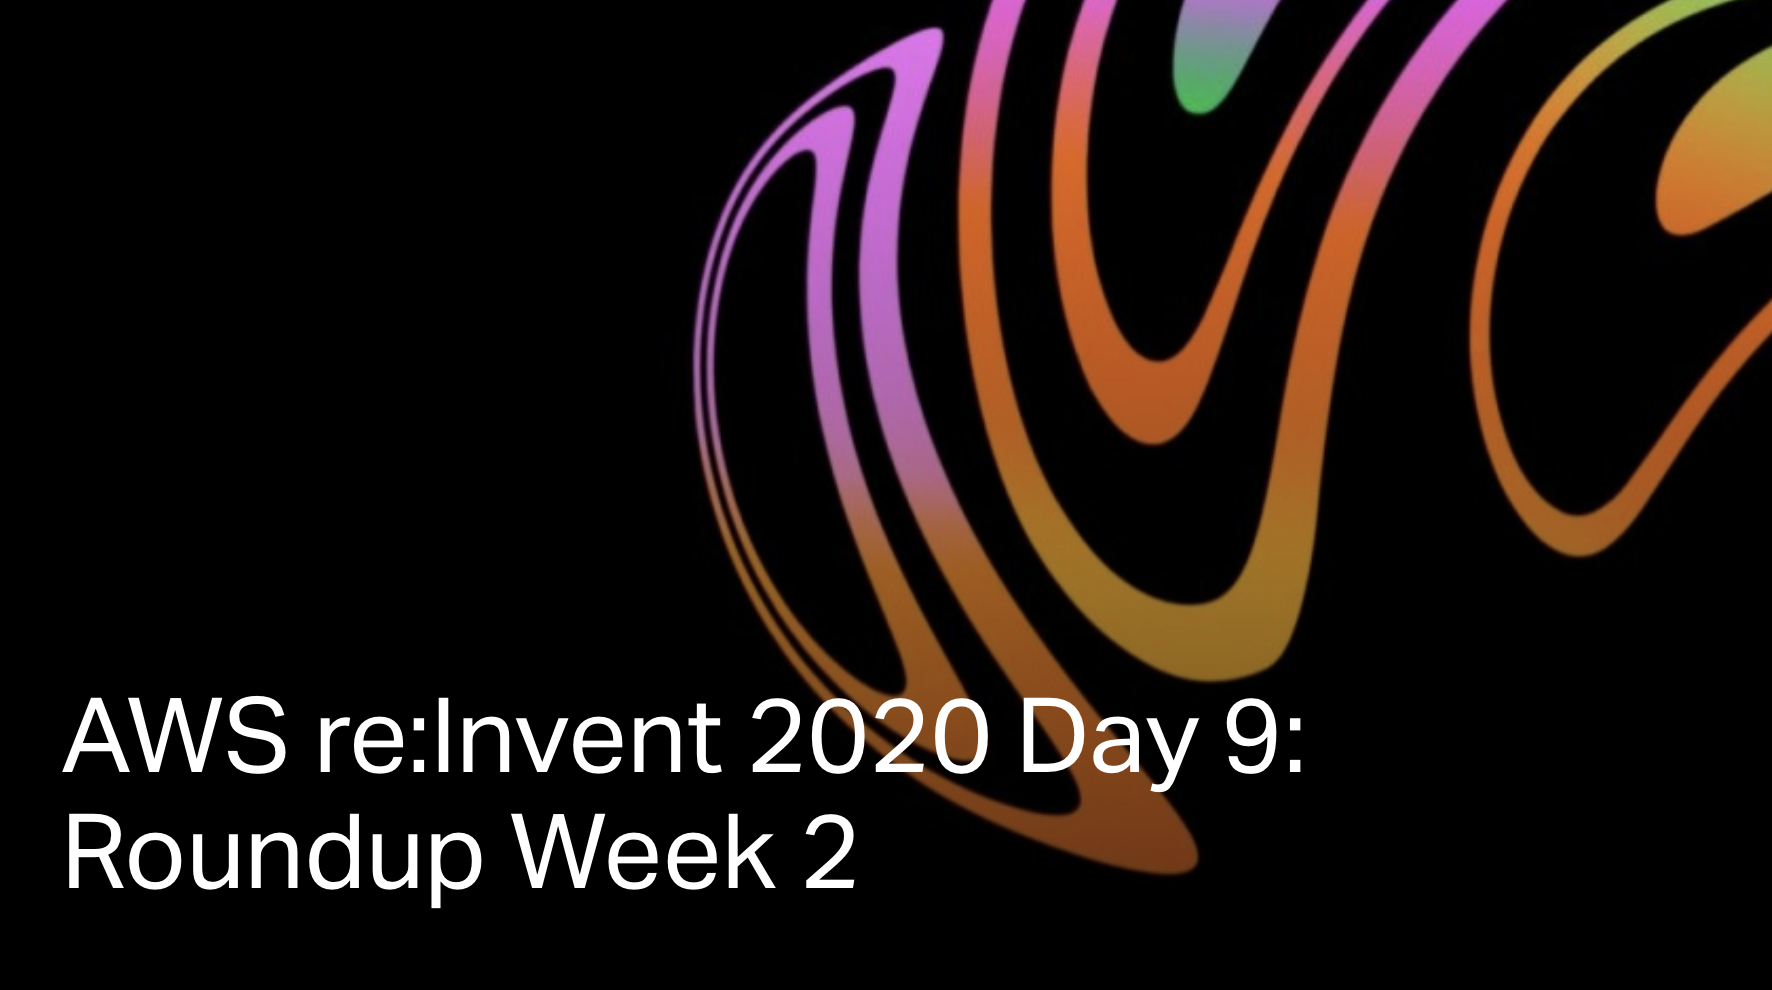 AWS re:Invent 2020 Day 9: Roundup Week 2